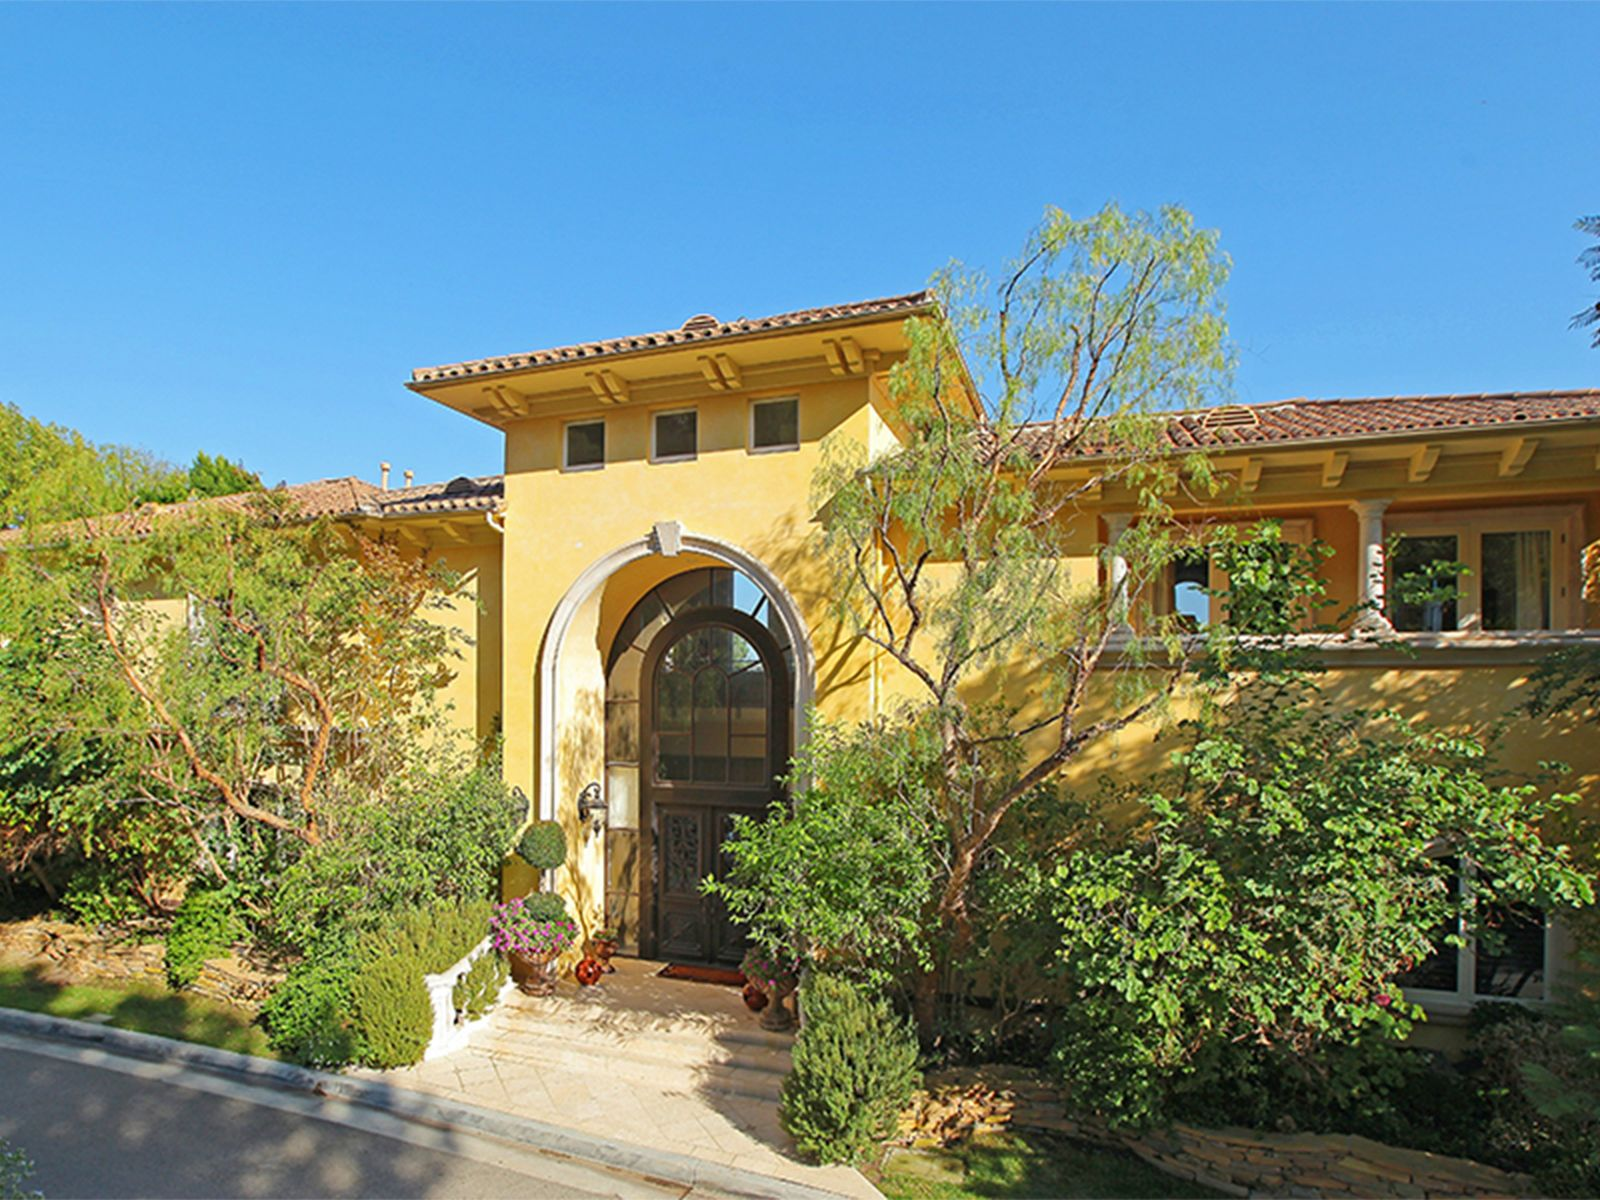 Custom Tennis Court Estate, Brentwood CA Single Family Home - Los Angeles Real Estate